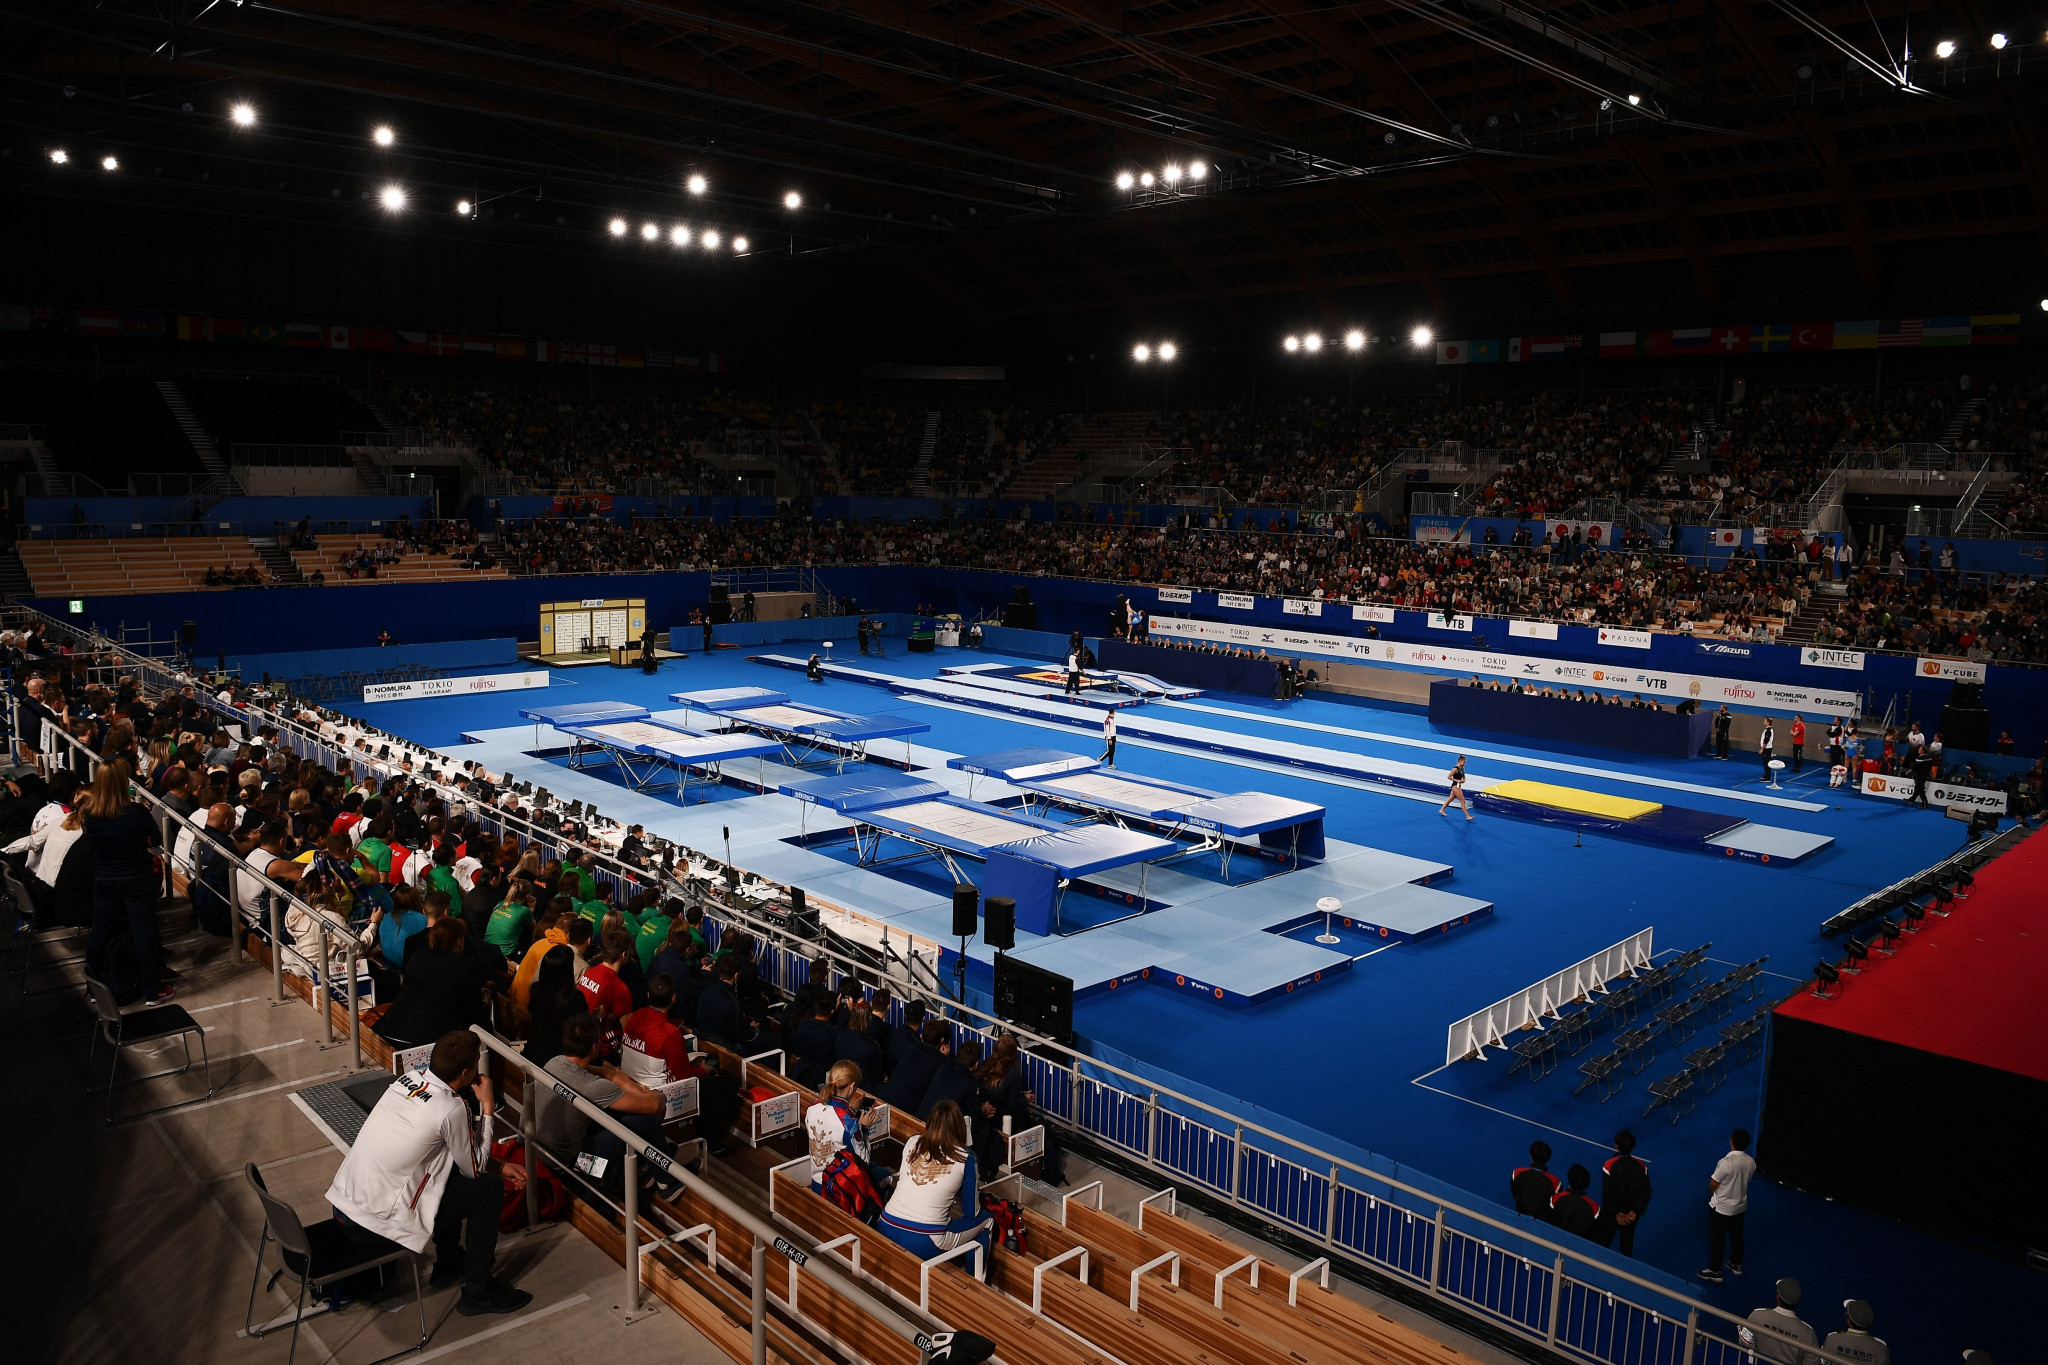 The FIG has published revised qualification criteria for Tokyo 2020 ©Getty Images